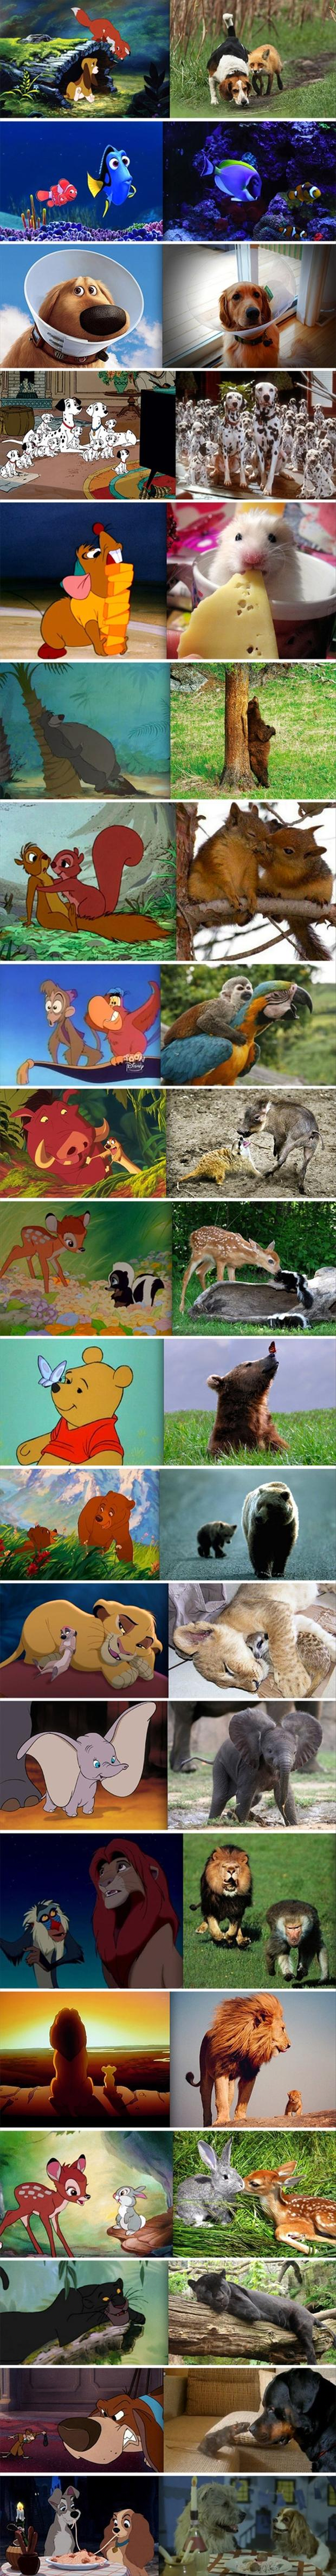 z cartoons look like real life animals